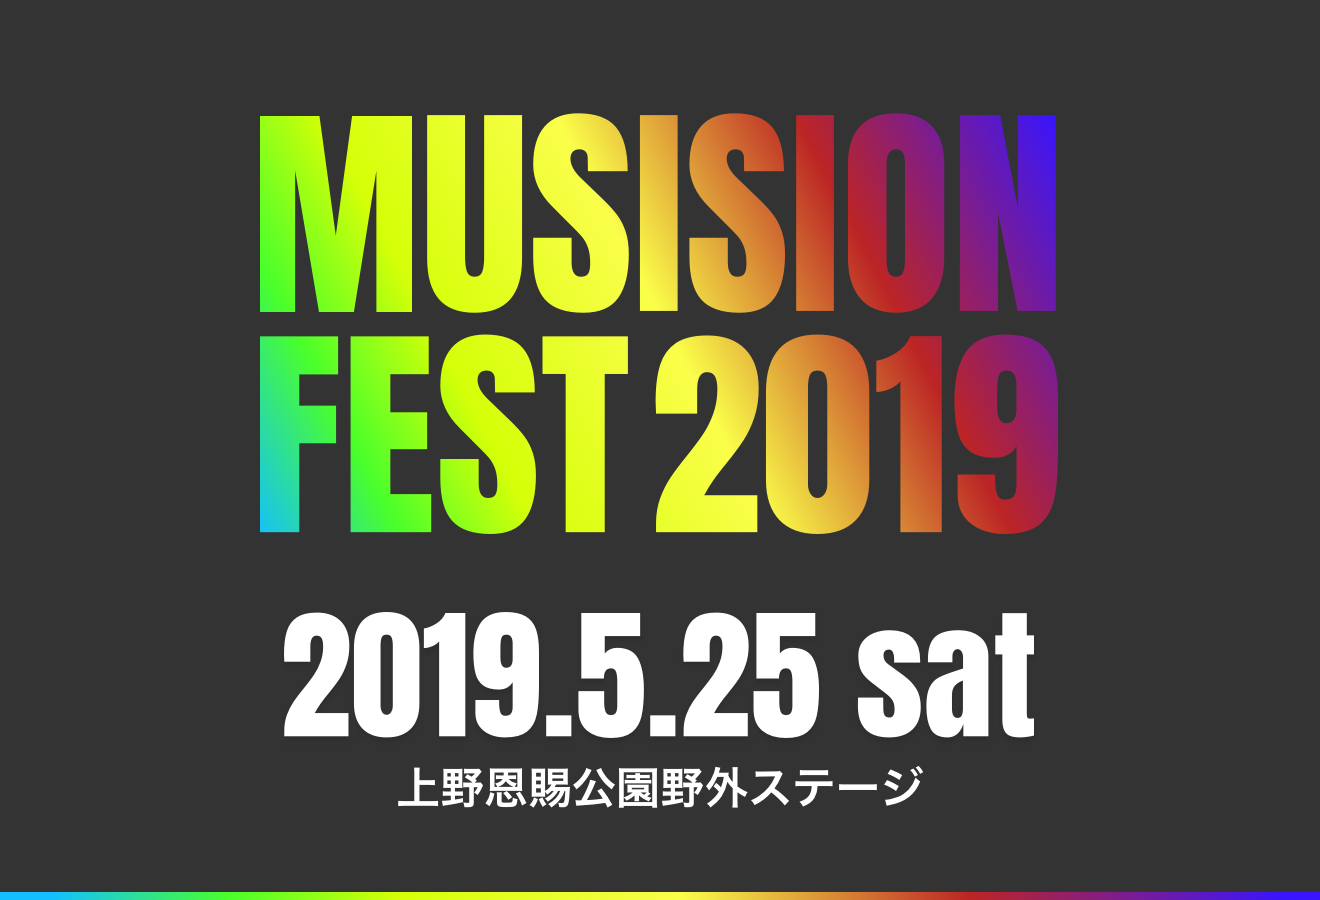 musisionfest